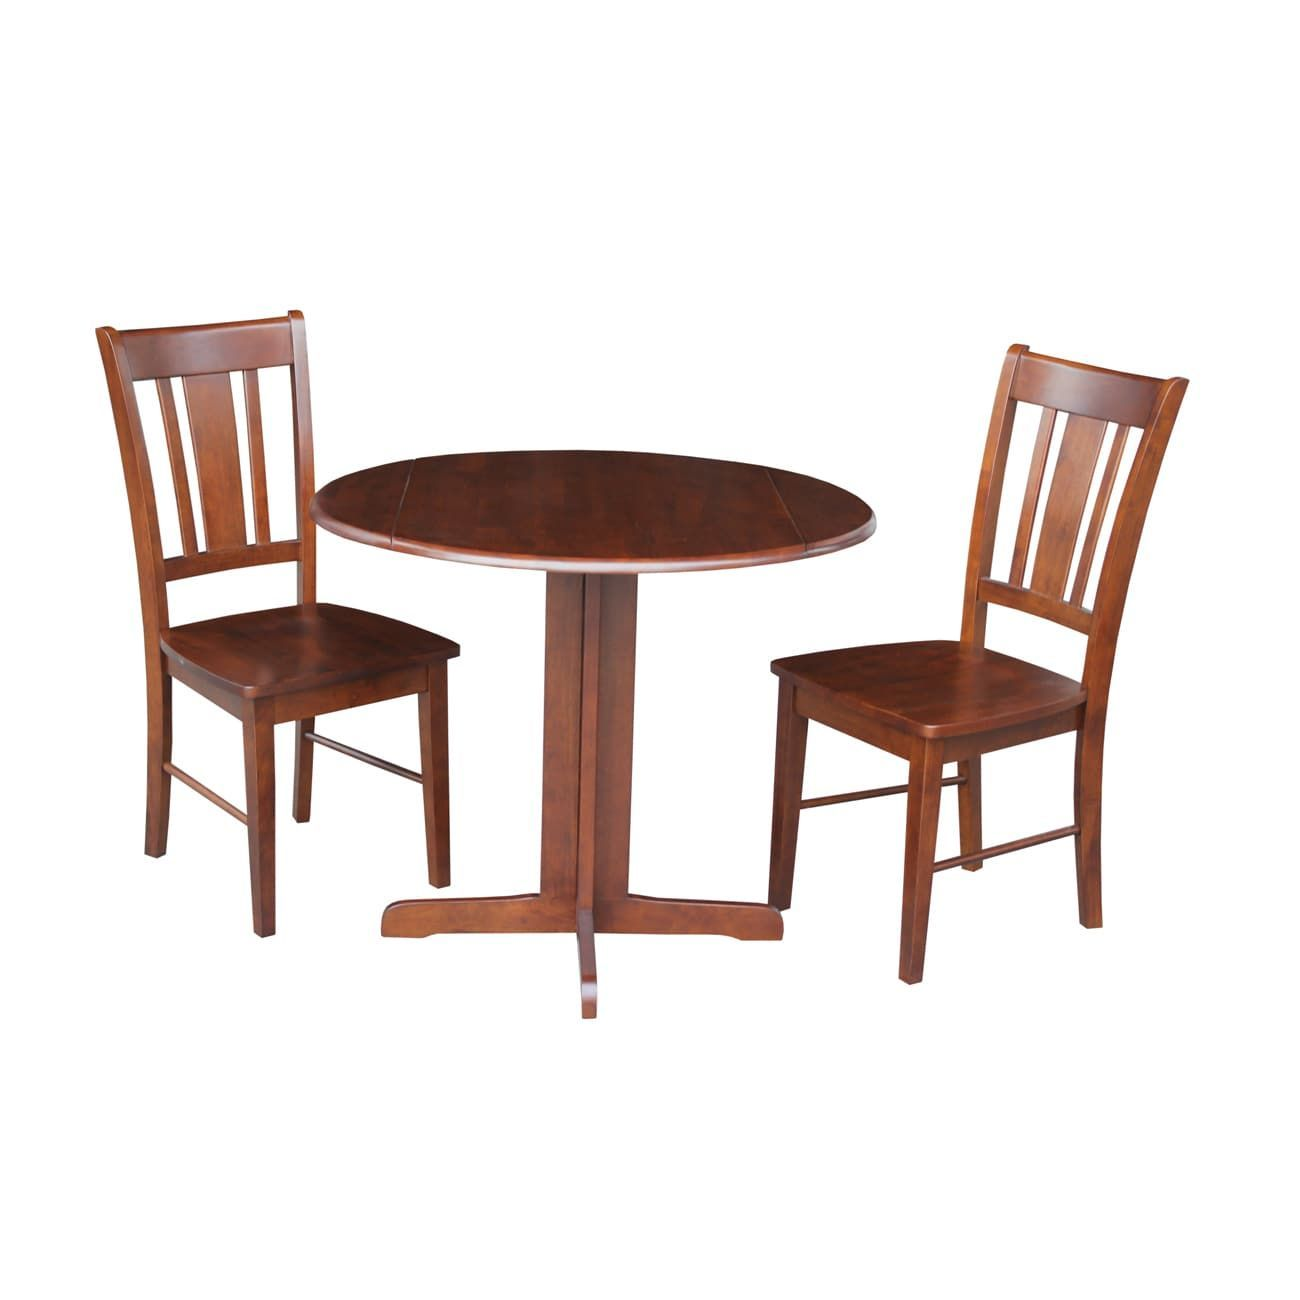 Dual Drop Leaf 36 Inch Dining Table With Two San Remo Chairs In Espresso